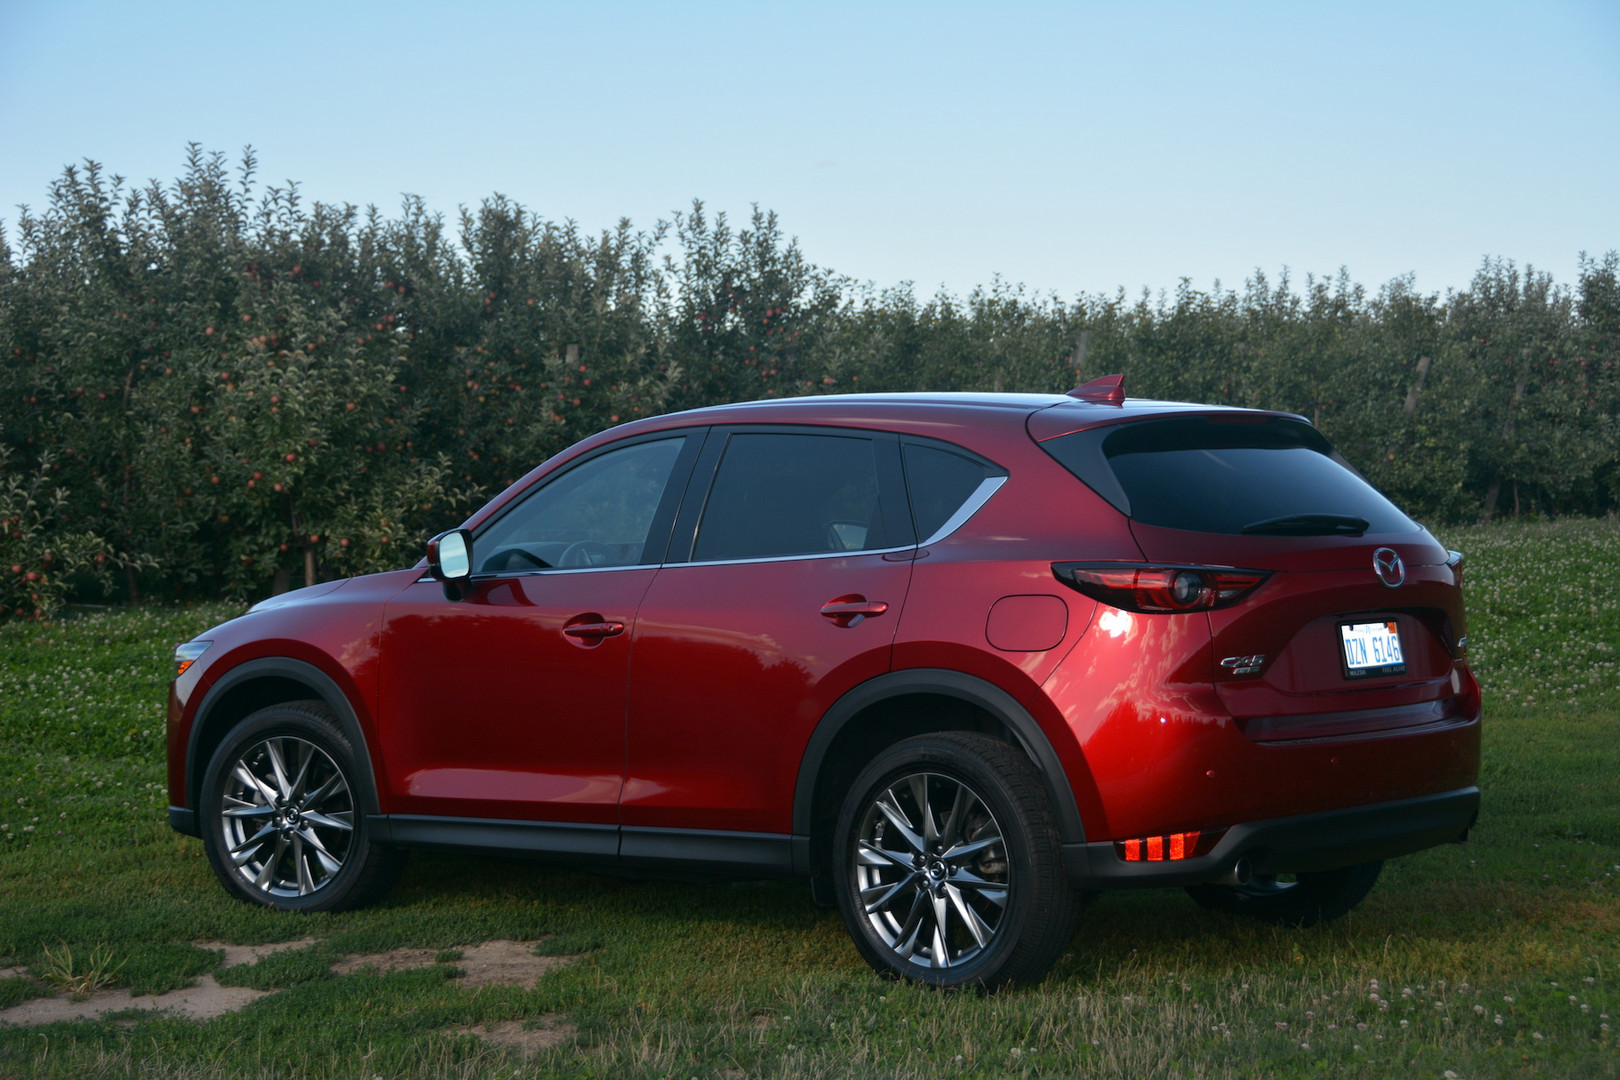 2019 Mazda CX5 Rear Side